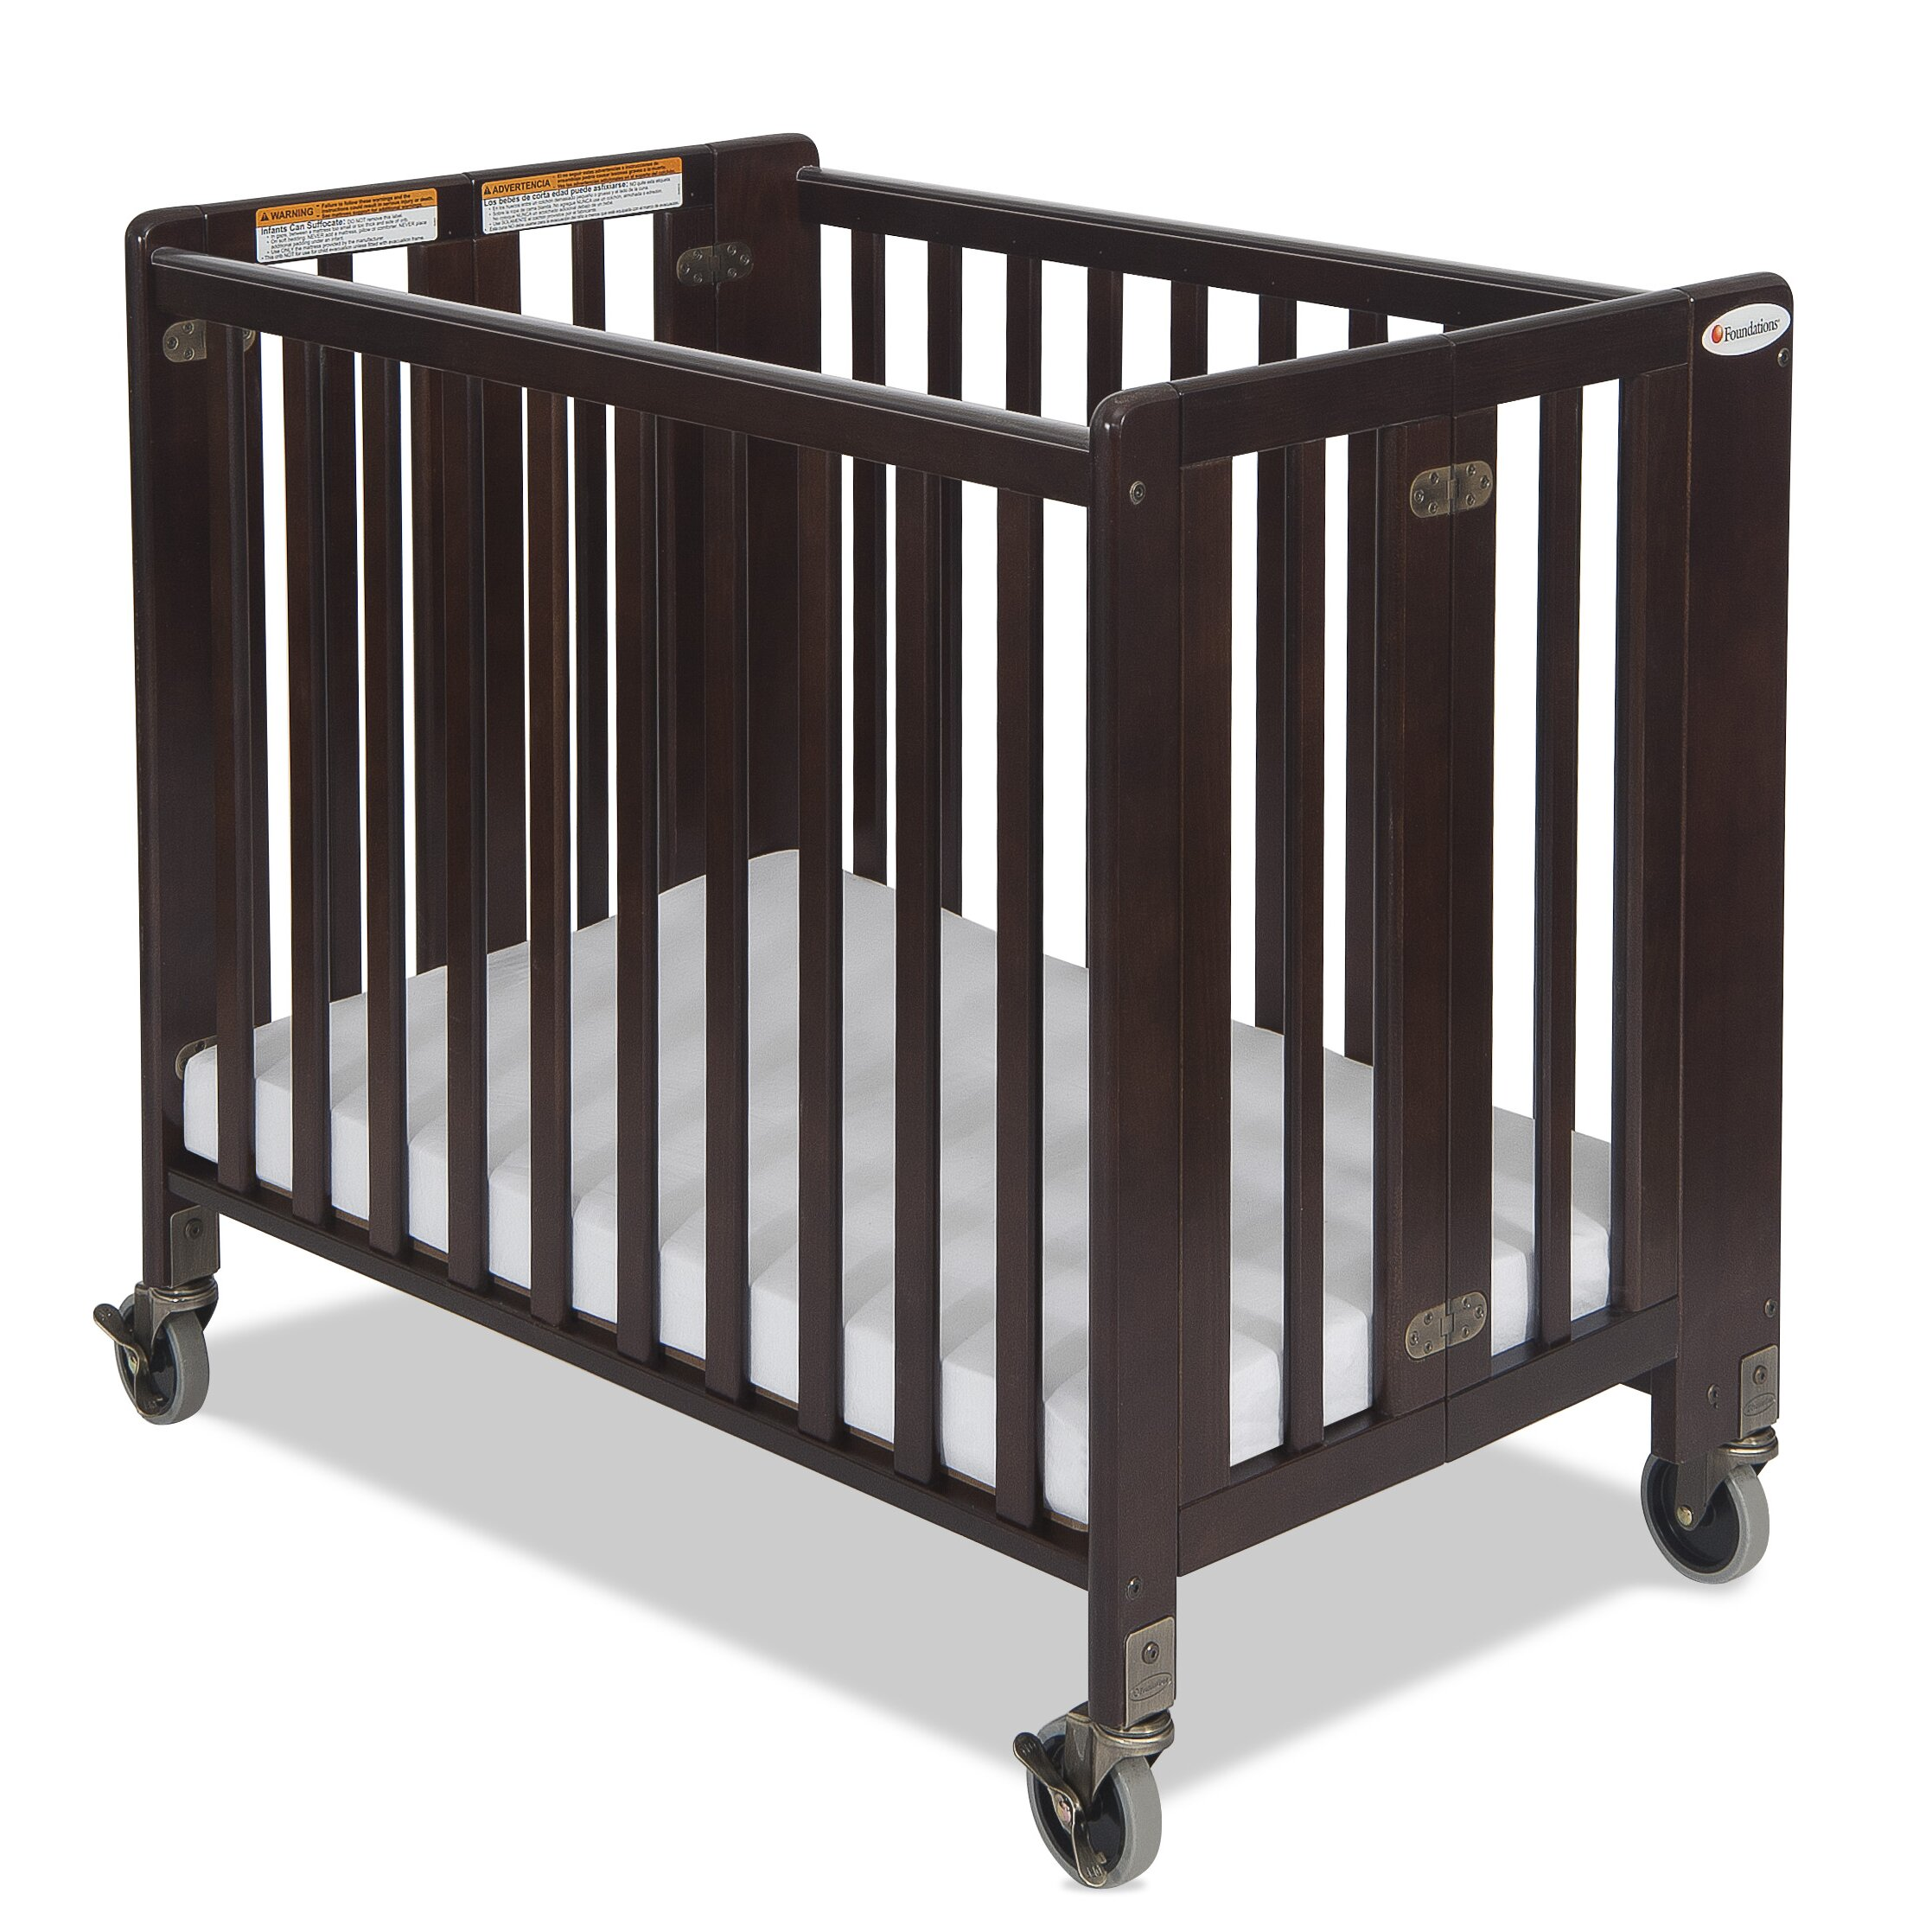 Wooden crib for sale quezon city - Hideaway Storable Wood Convertible Crib With Mattress